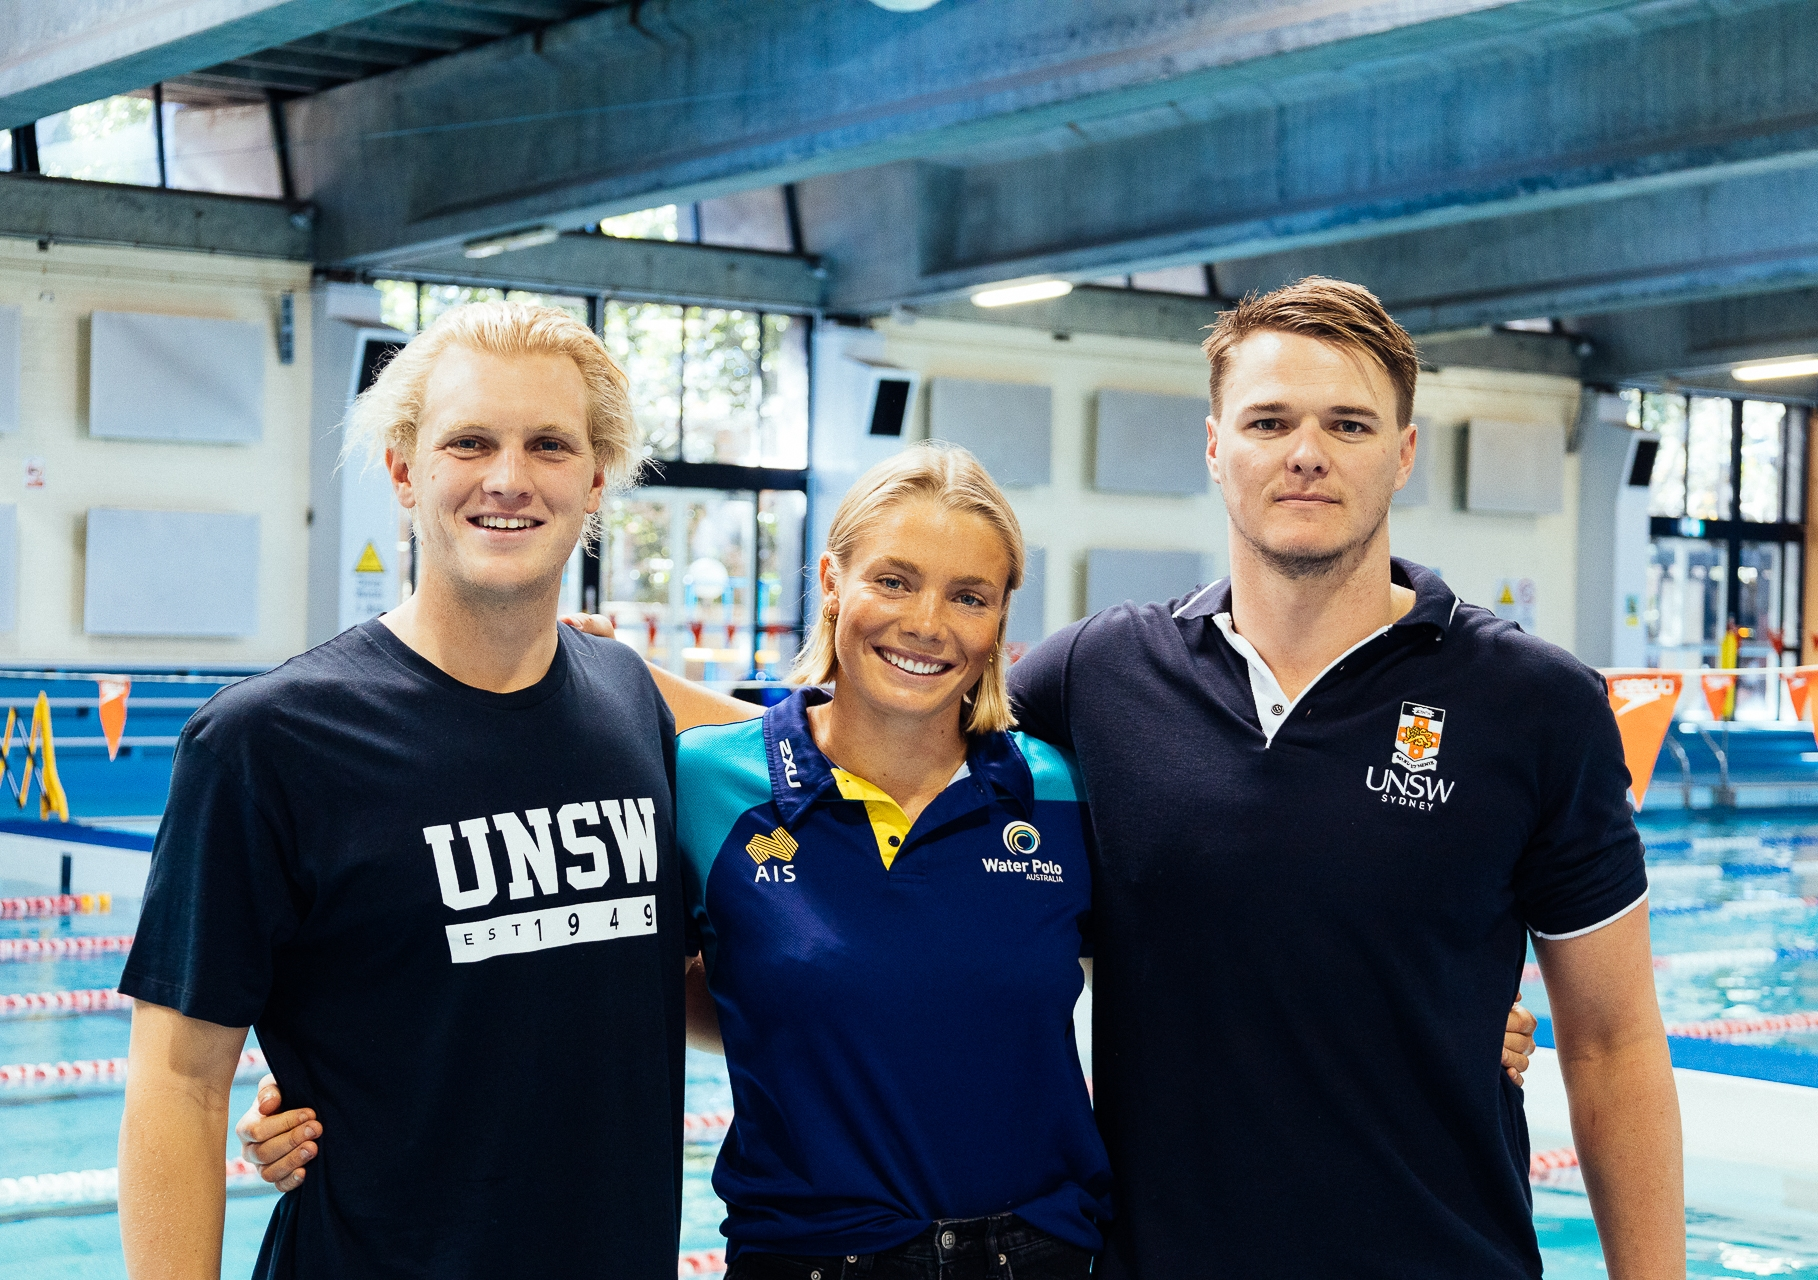 Eight UNSW students, including water polo players (L-R) Tim Putt, Amy Ridge and Nathan Power, and four alumni will compete at the Tokyo Olympics. Photo: Arc UNSW